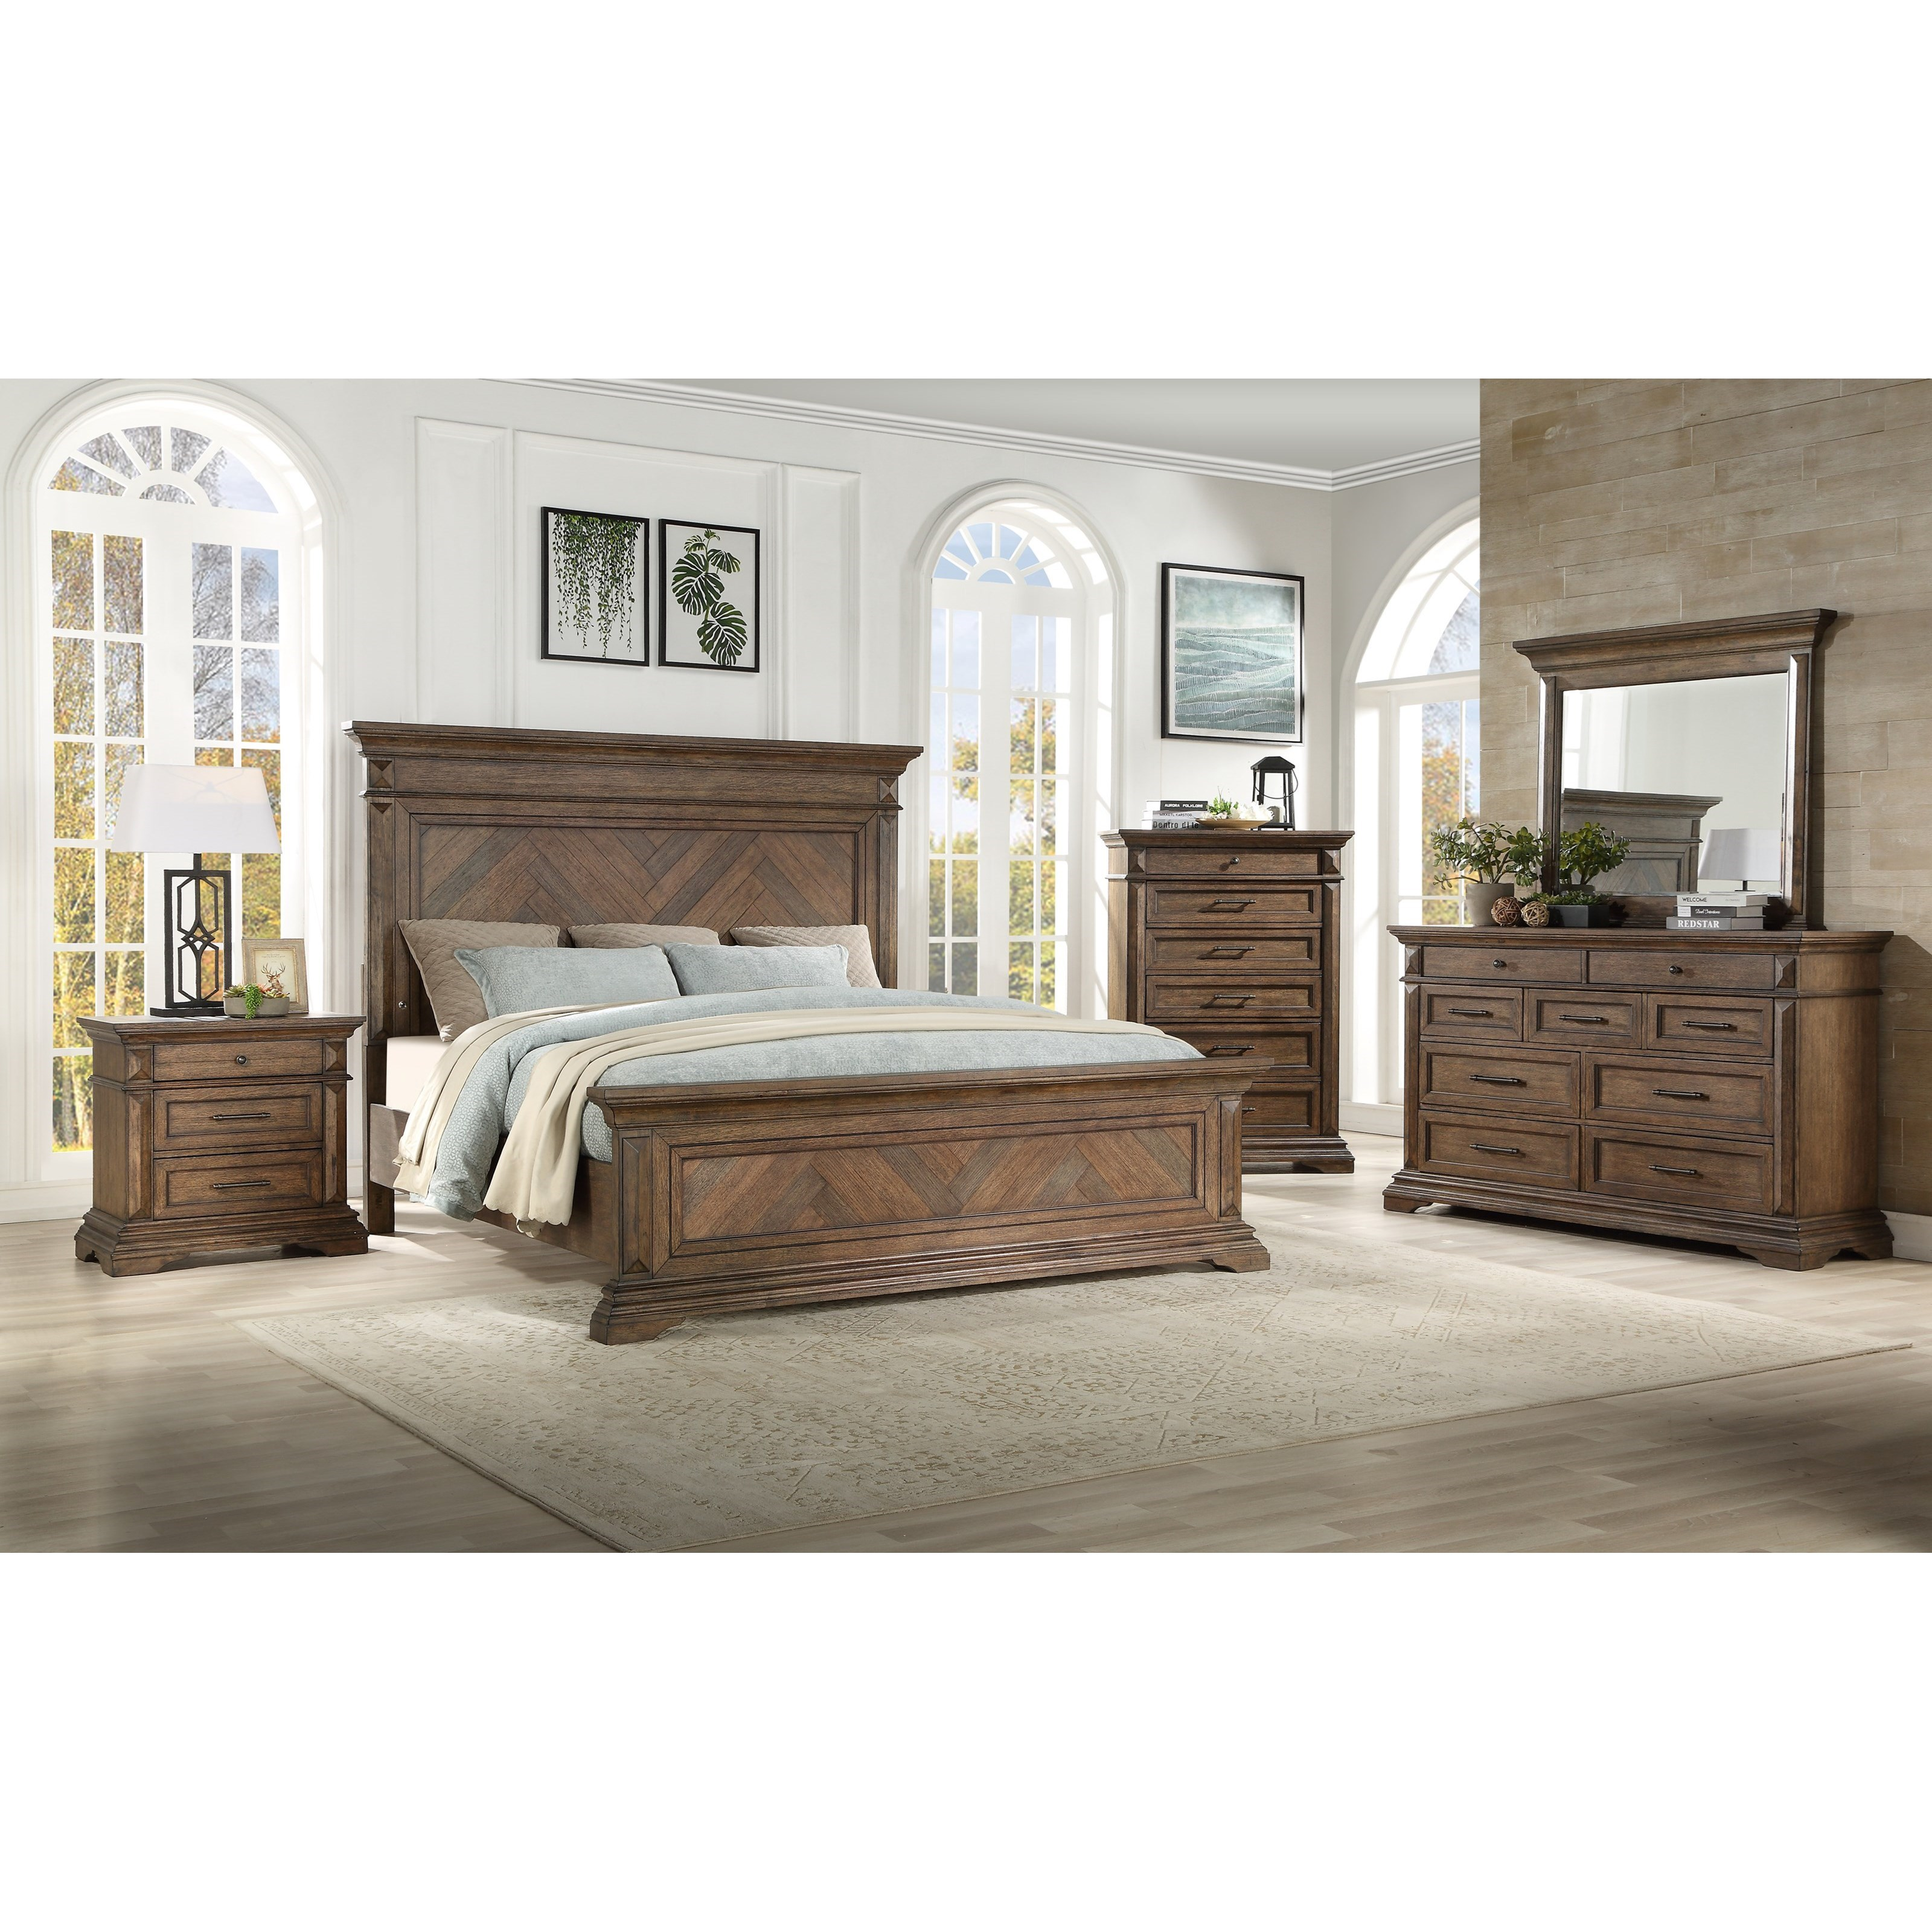 Mar Vista Queen Bedroom Group by New Classic at Wilcox Furniture